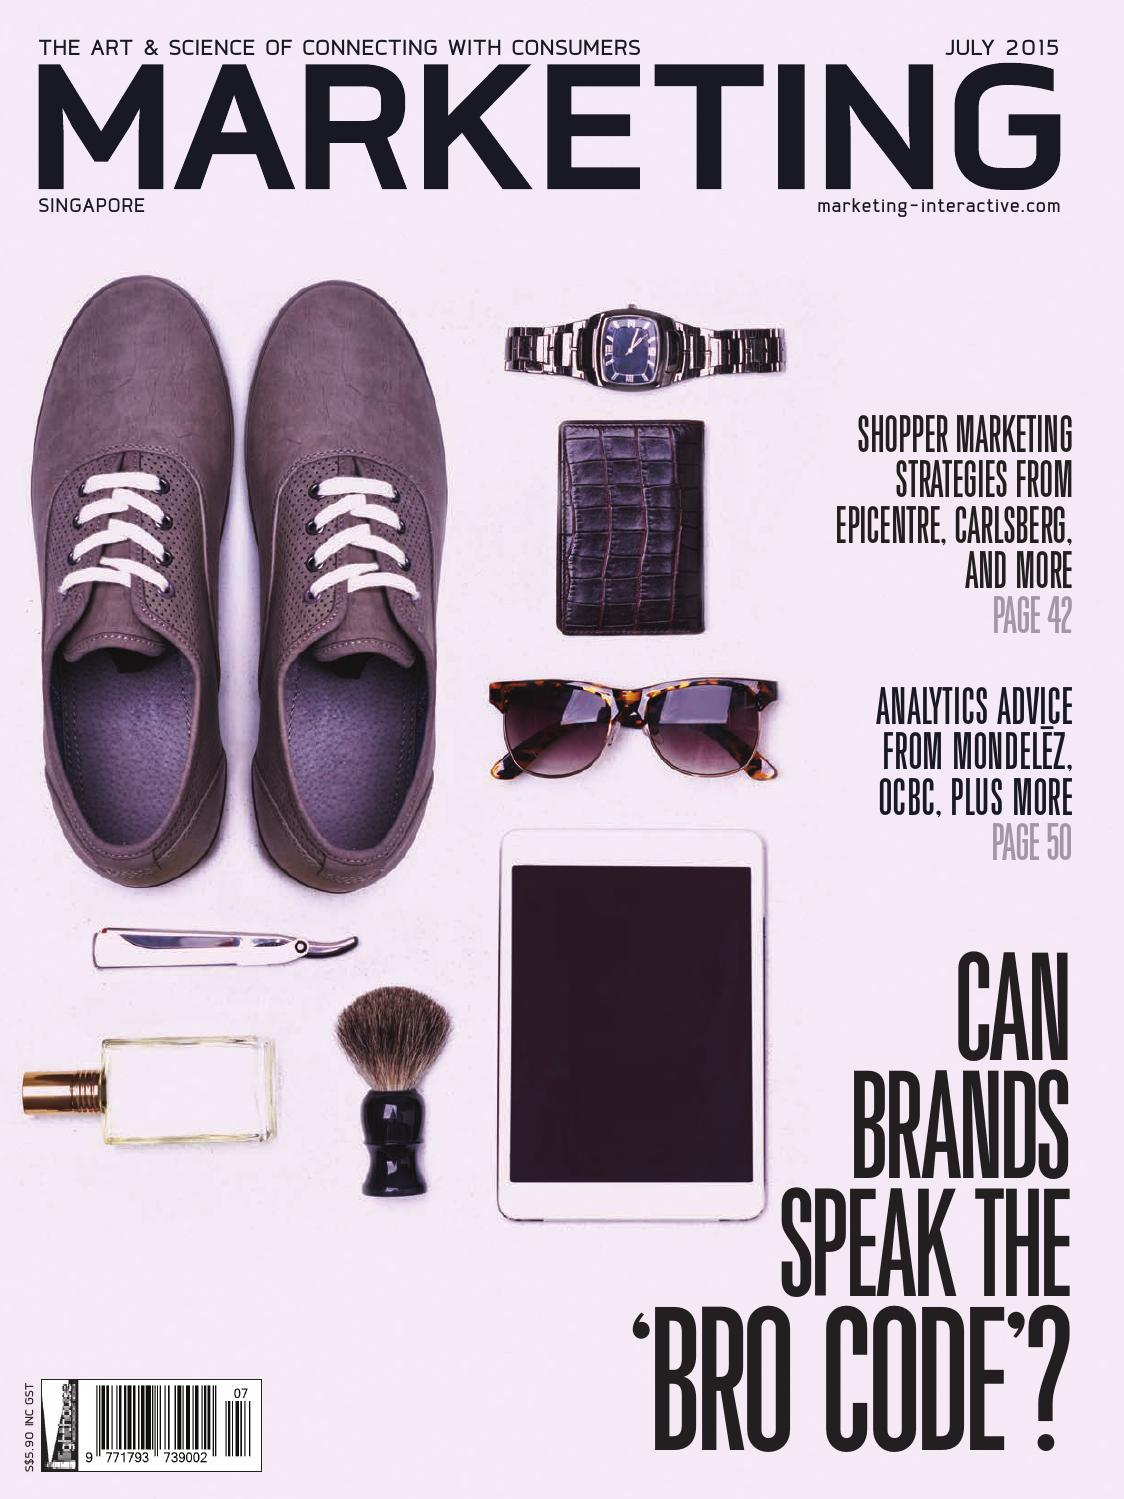 Le Meilleur Marketing Magazine Sg Jul 2015 By Marketing Magazine Ce Mois Ci